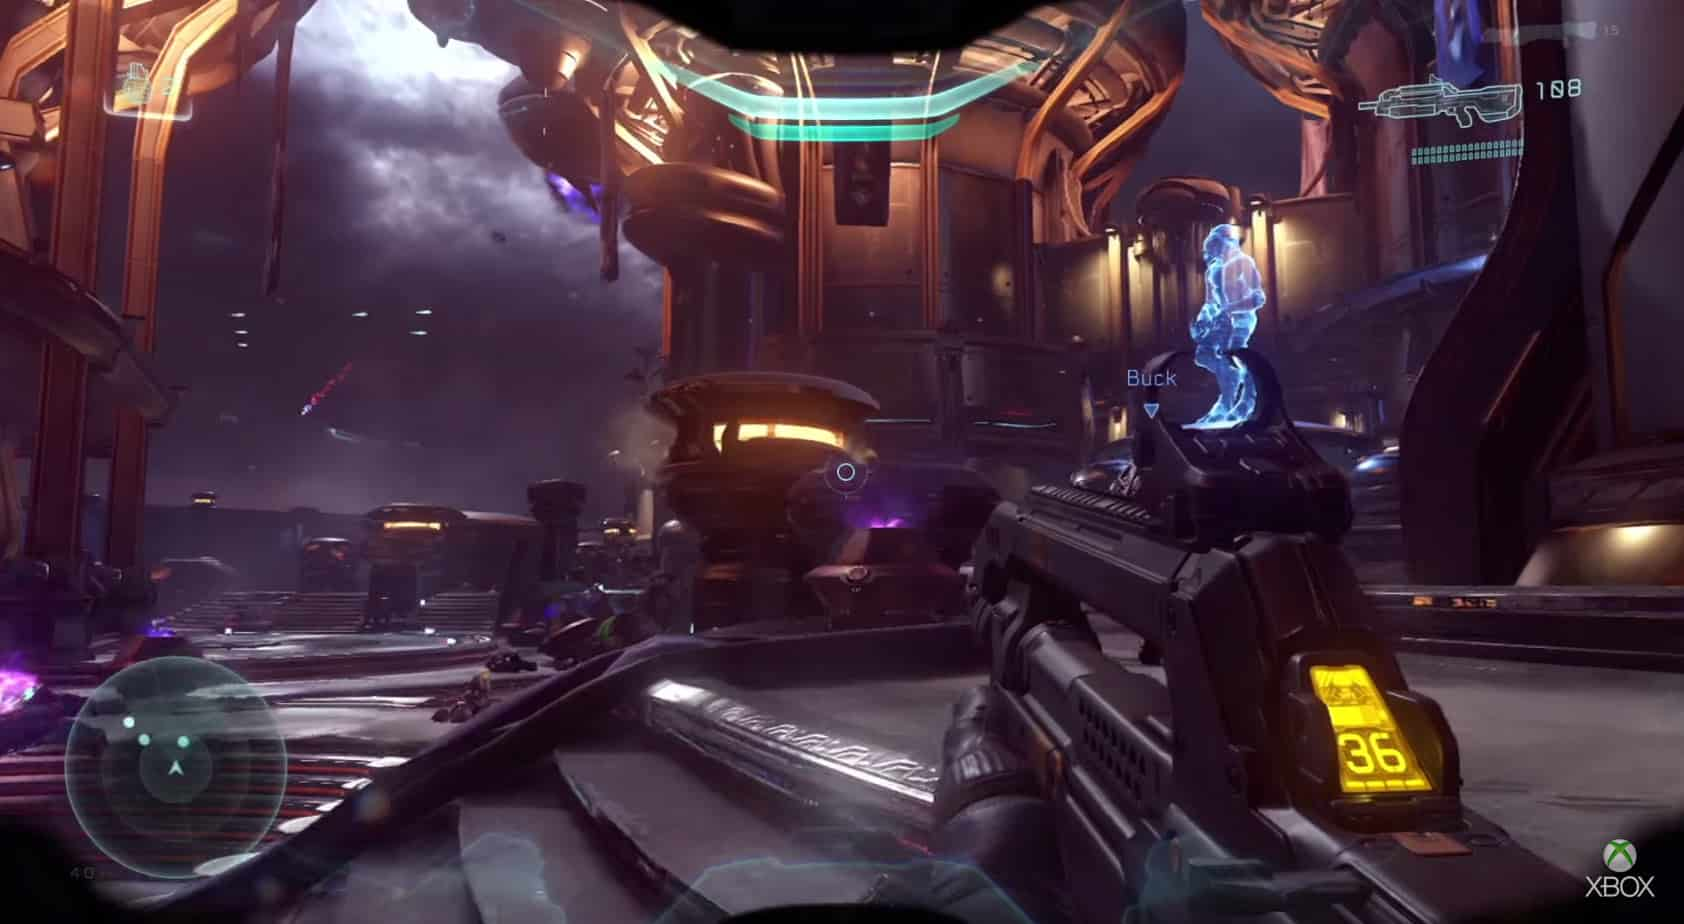 Halo 5: Guardians' finds its true strength in its multiplayer - PopOptiq